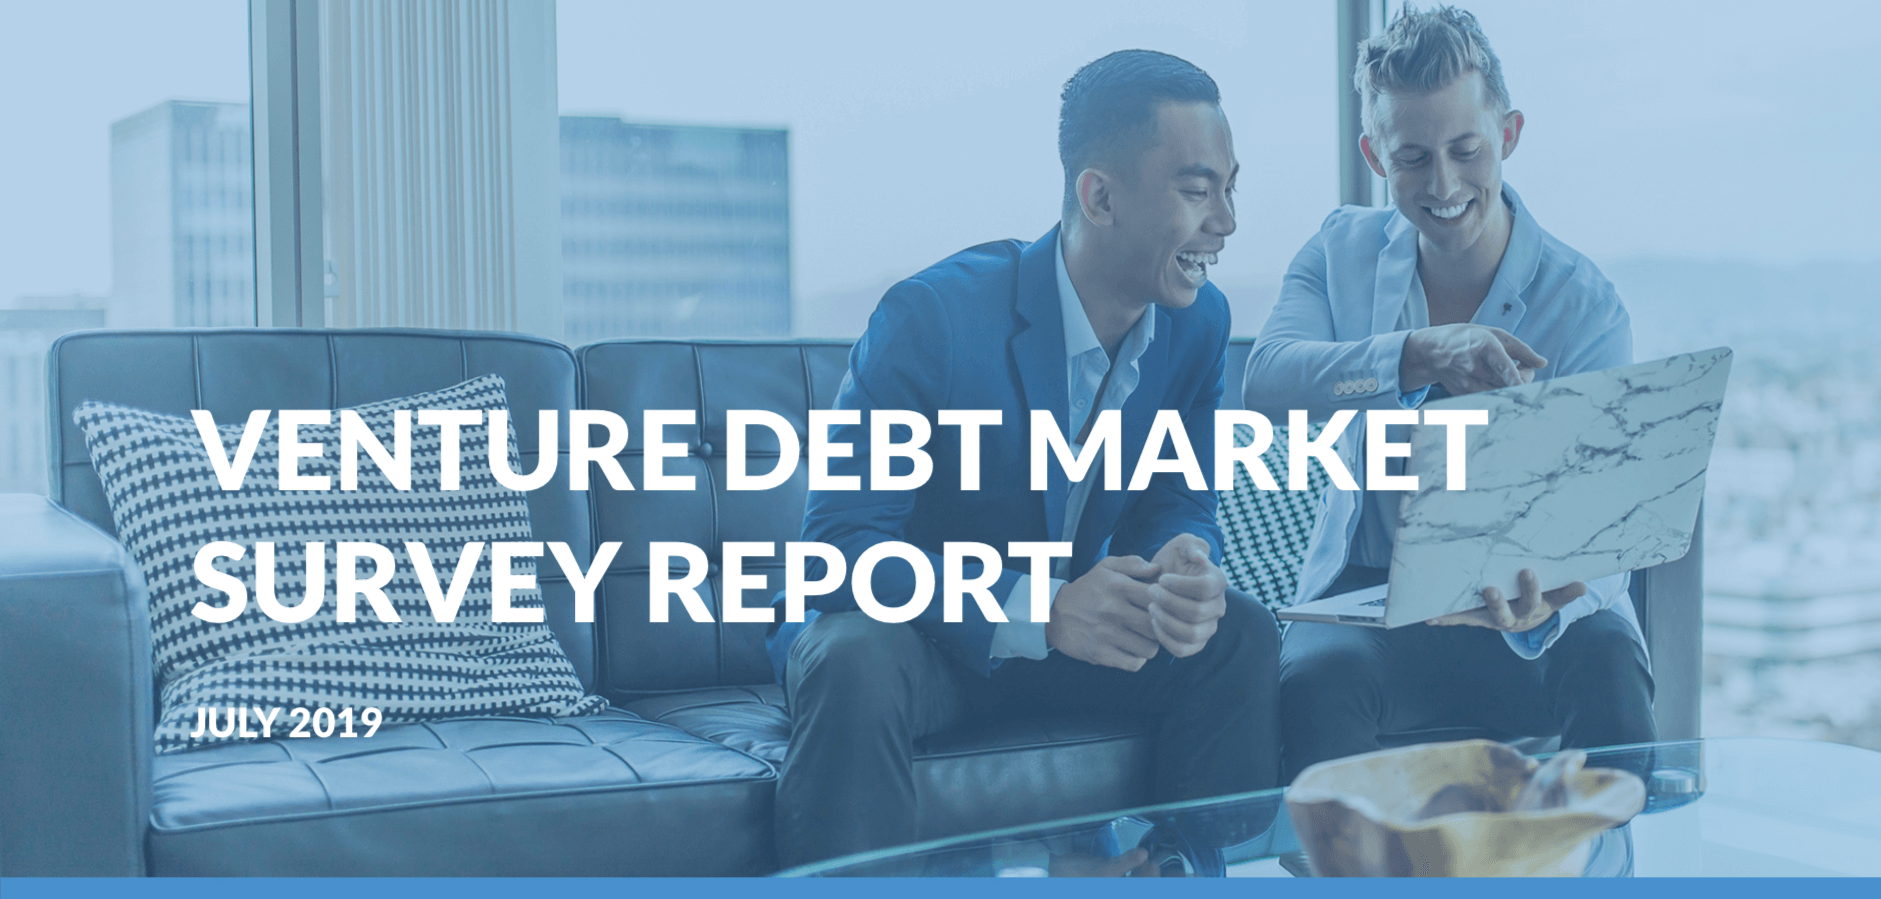 Venture Debt Market to Grow to $10 Billion in 2019